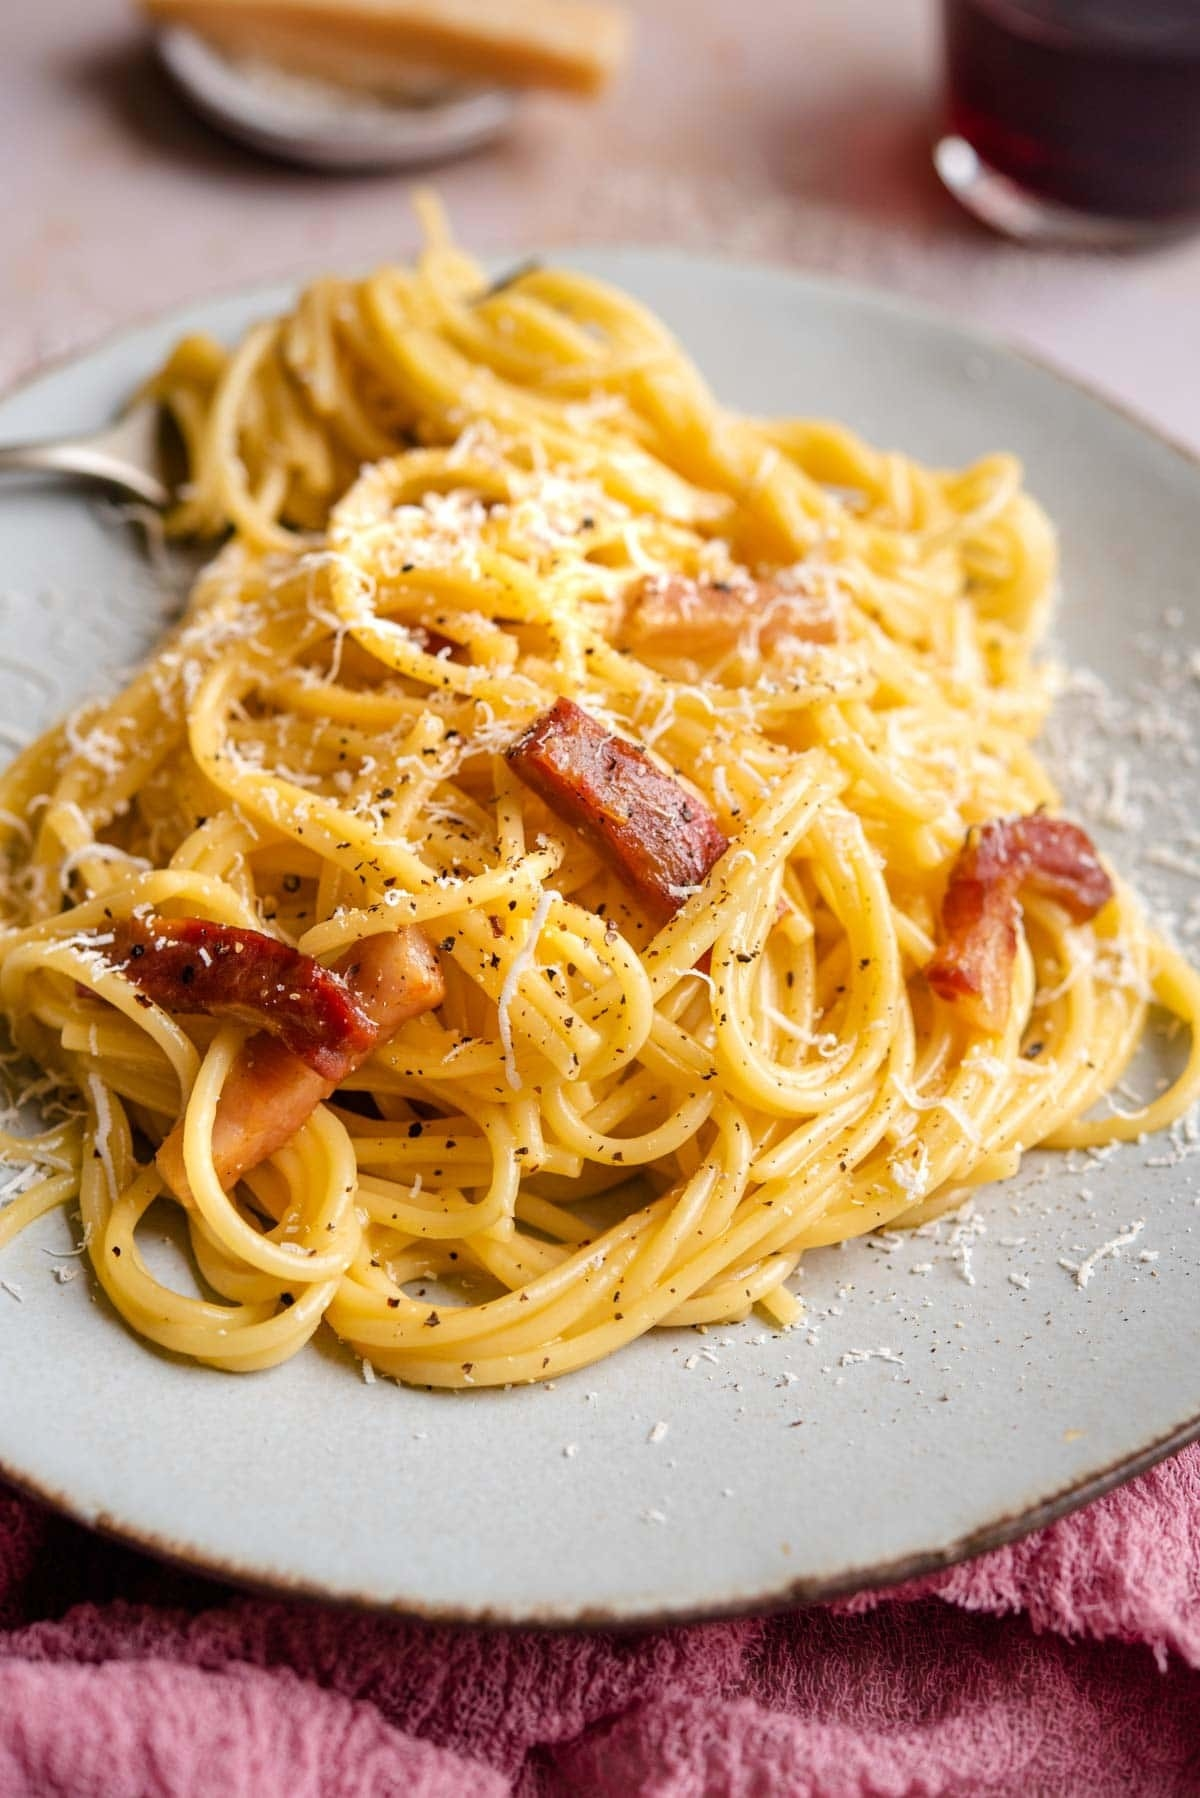 A bed of creamy noodles studded with crispy bits of pork, delicate shreds of cheese, and fresh cracked pepper.